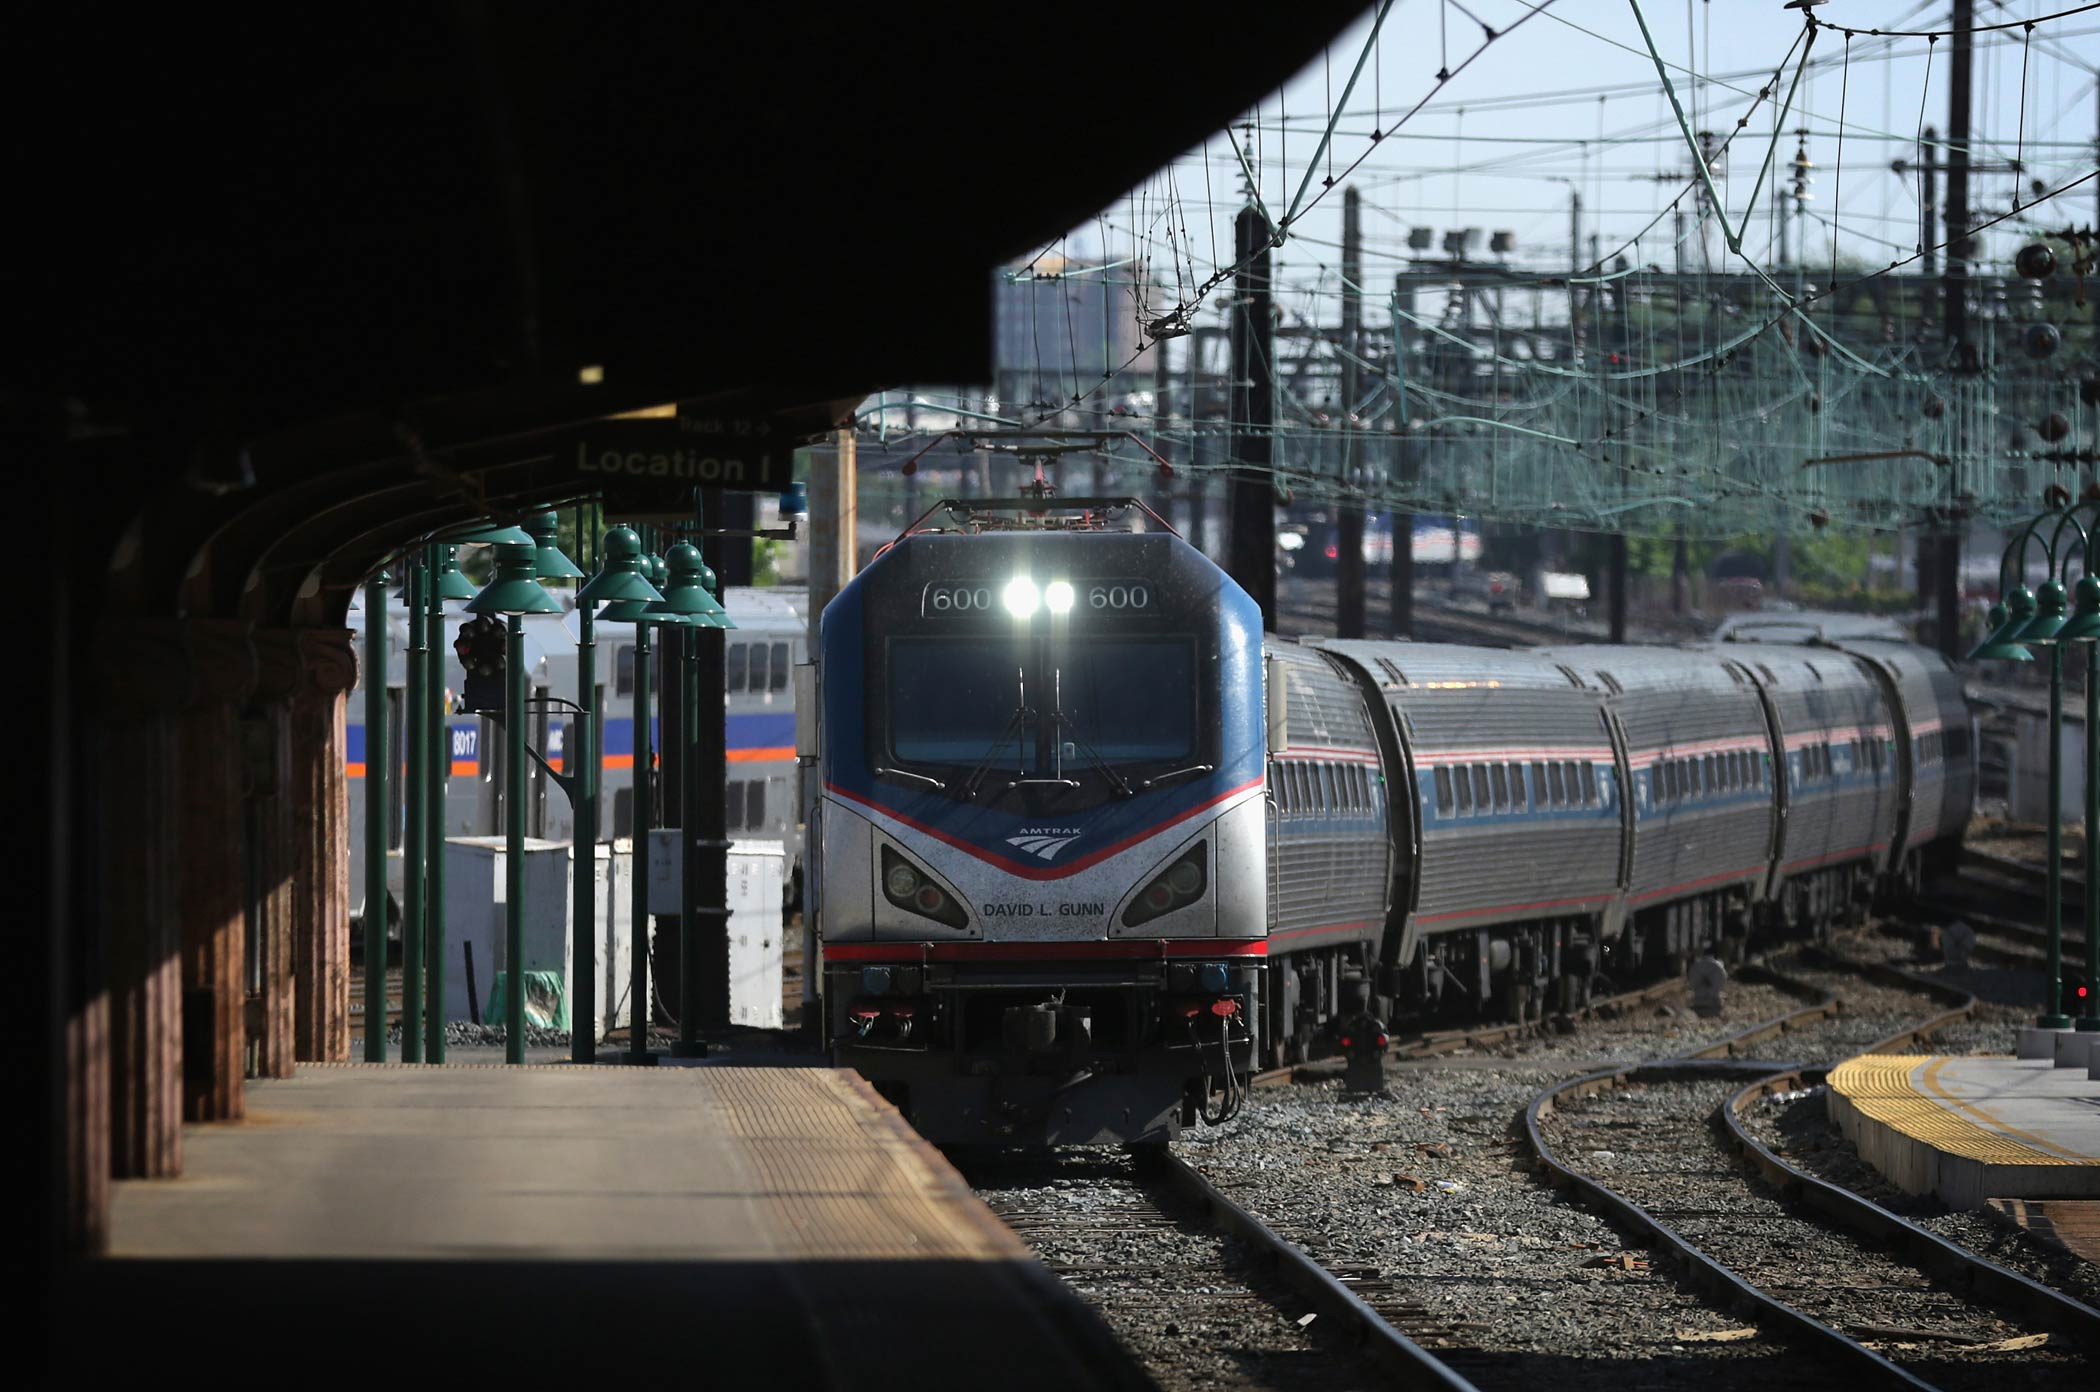 An Amtrak train arrives at Union Station on May 18, 2015 in Washington.